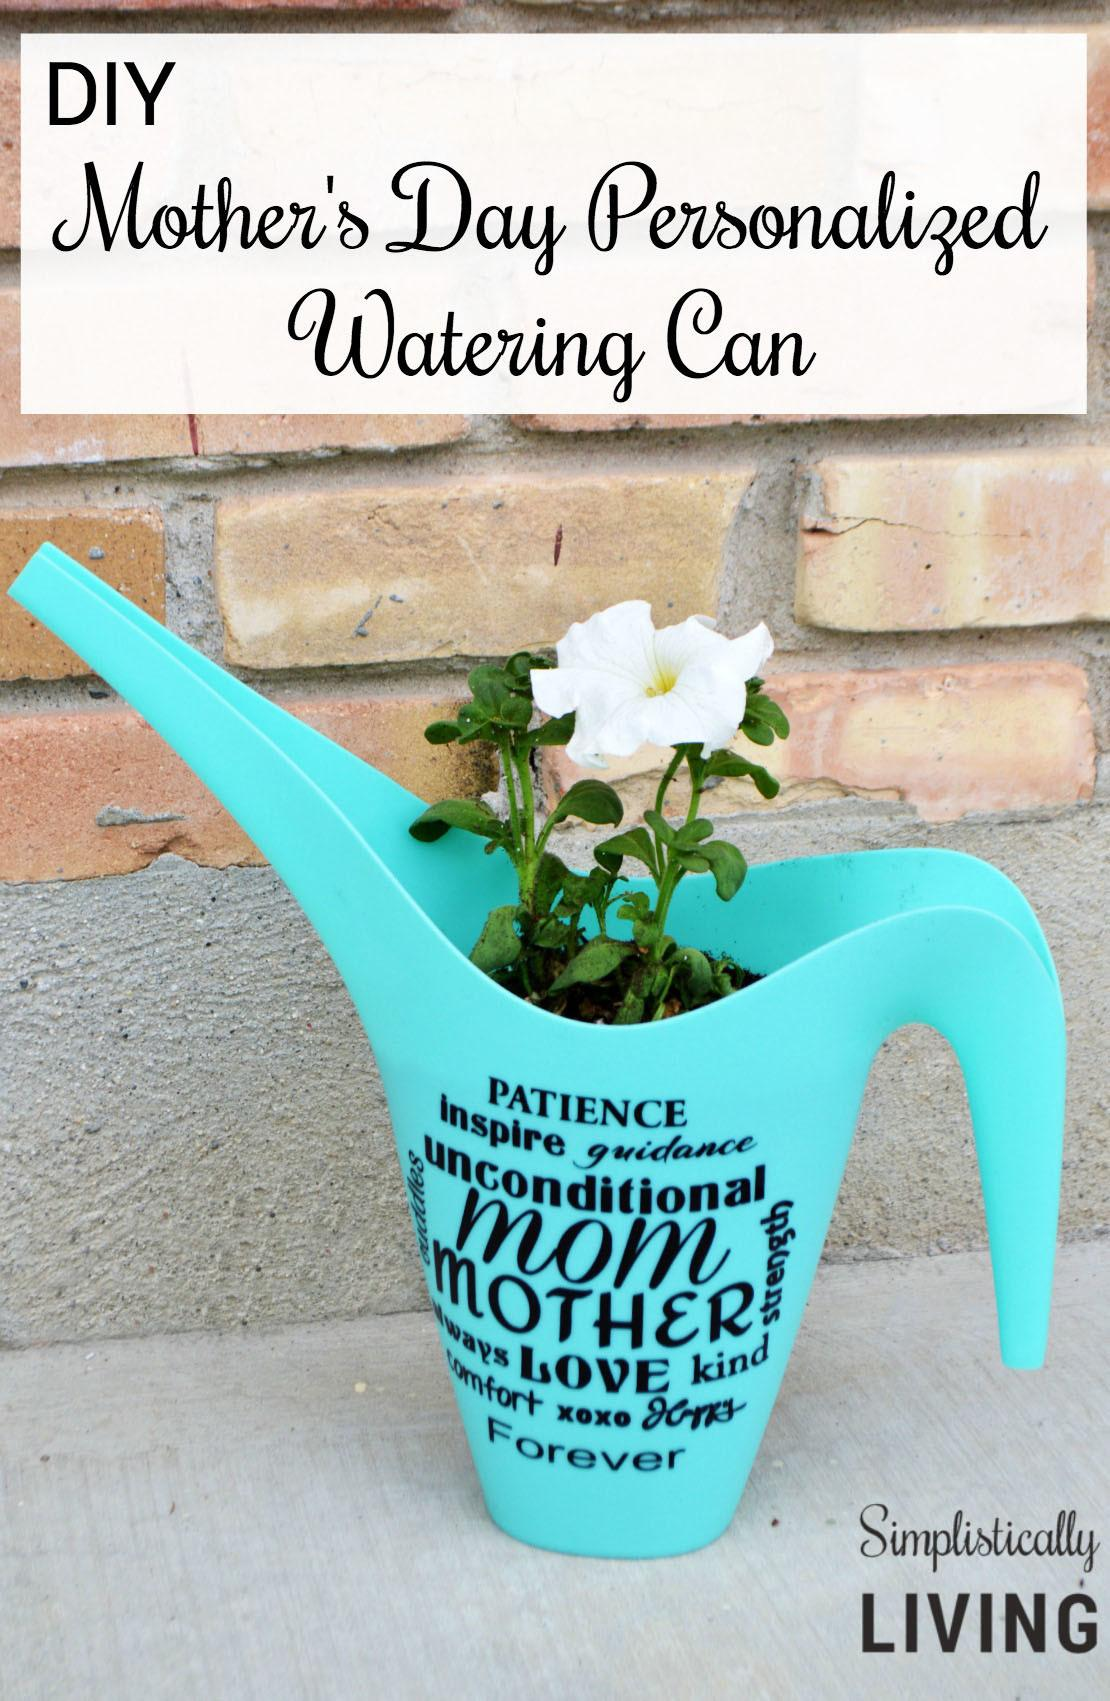 Diy Mother Day Personalized Watering Can Simplistically